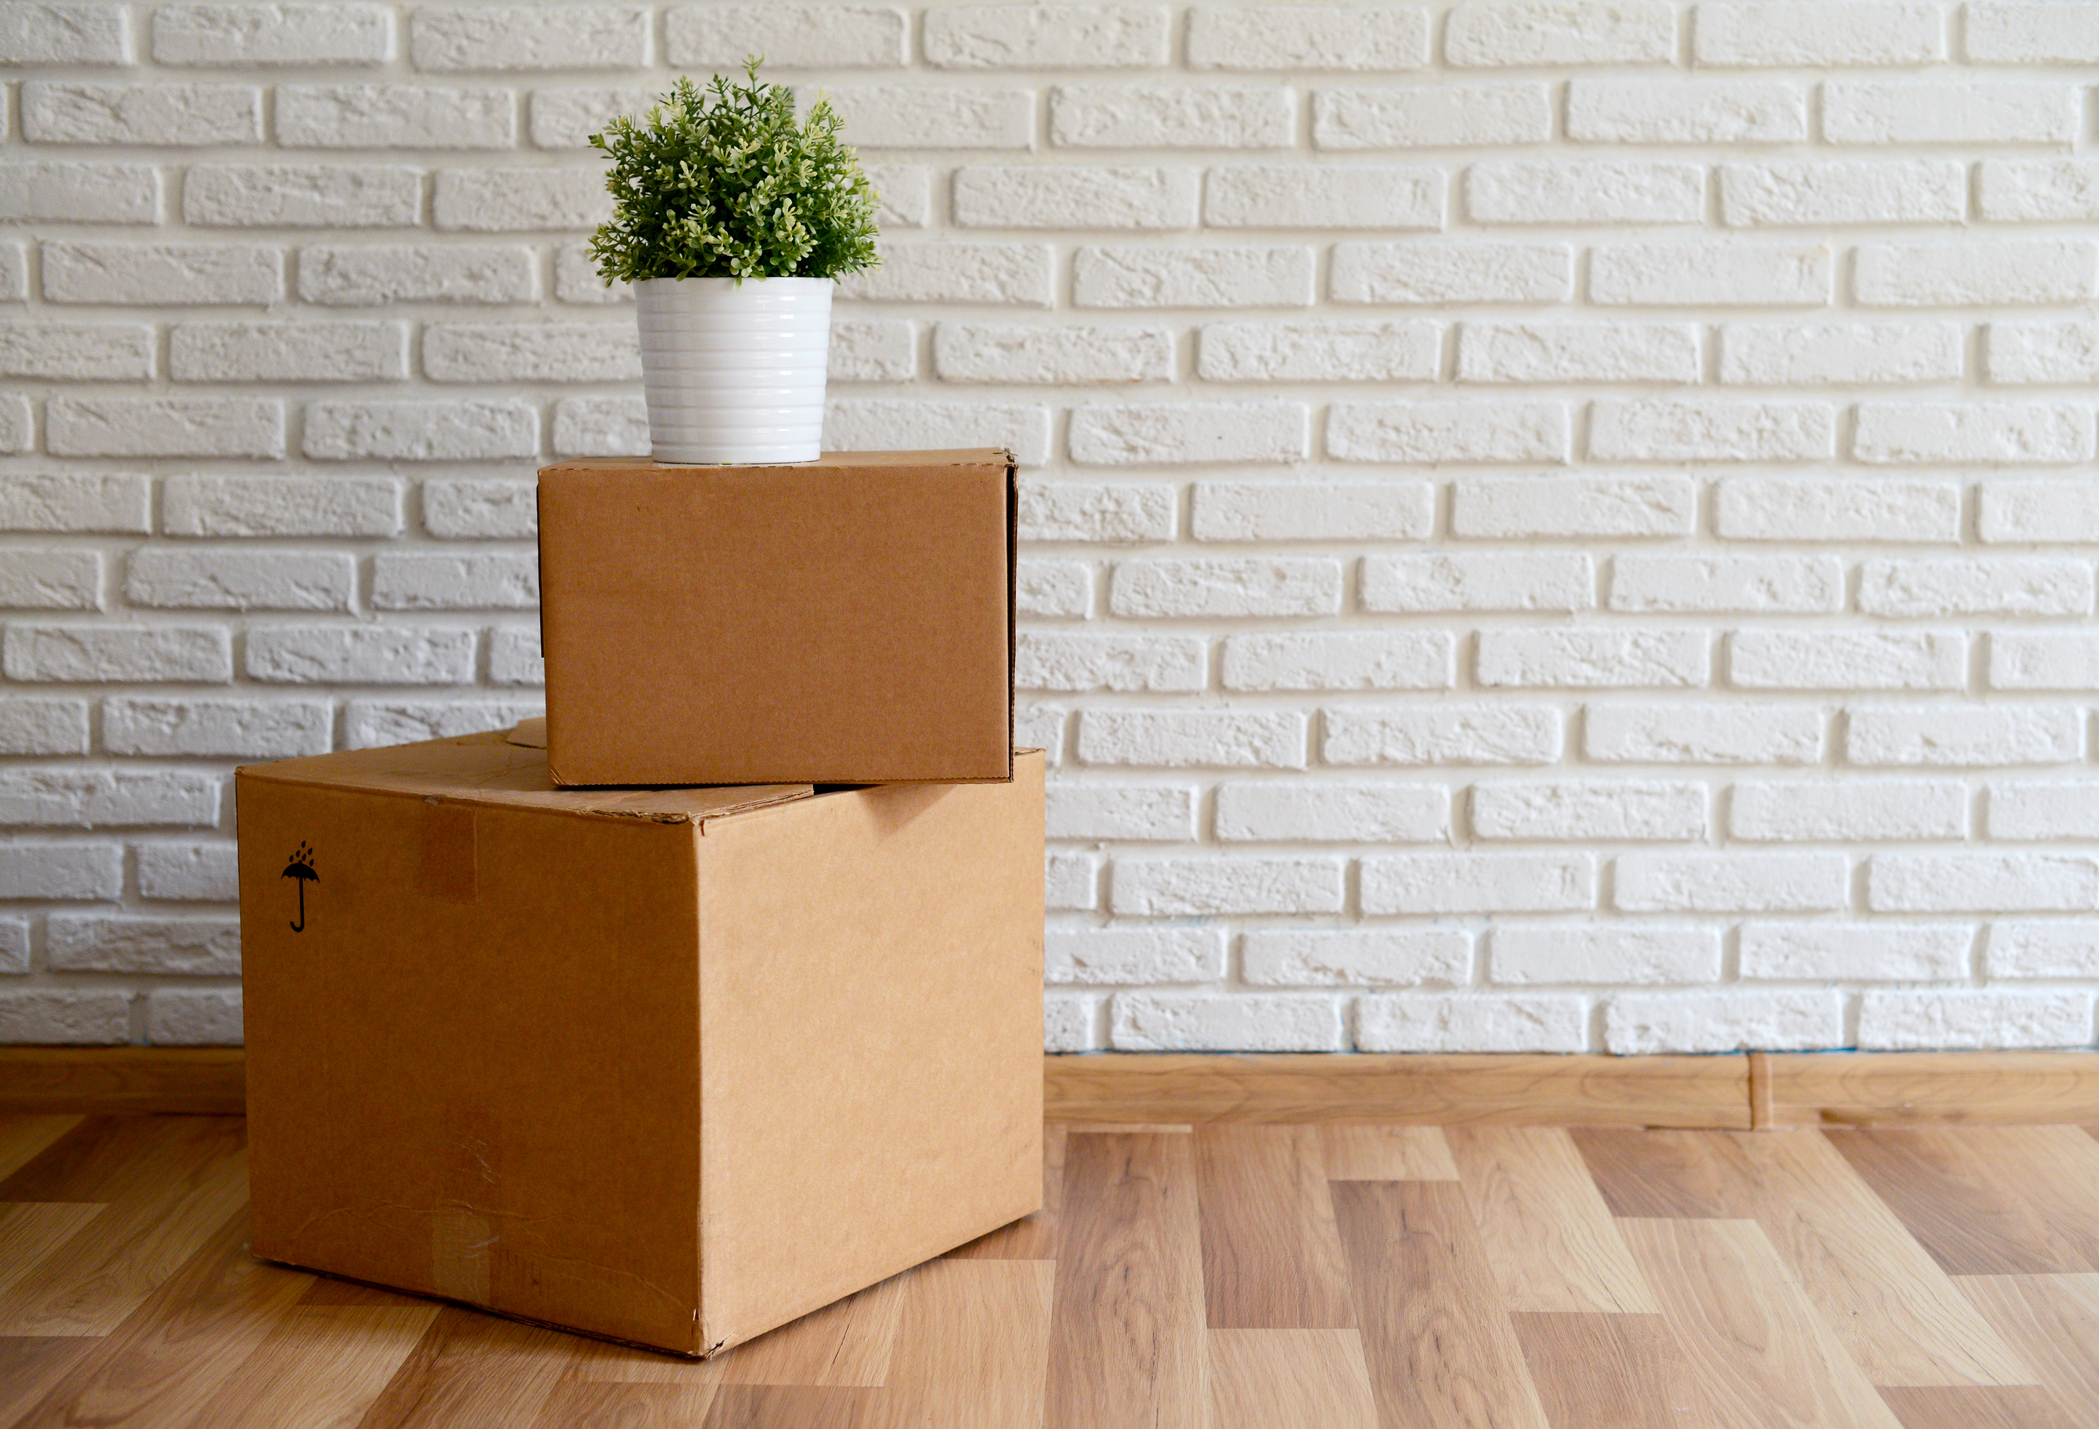 Nashville relocation services room with white painted brick wall with moving boxes and green plant on hardwood floor.